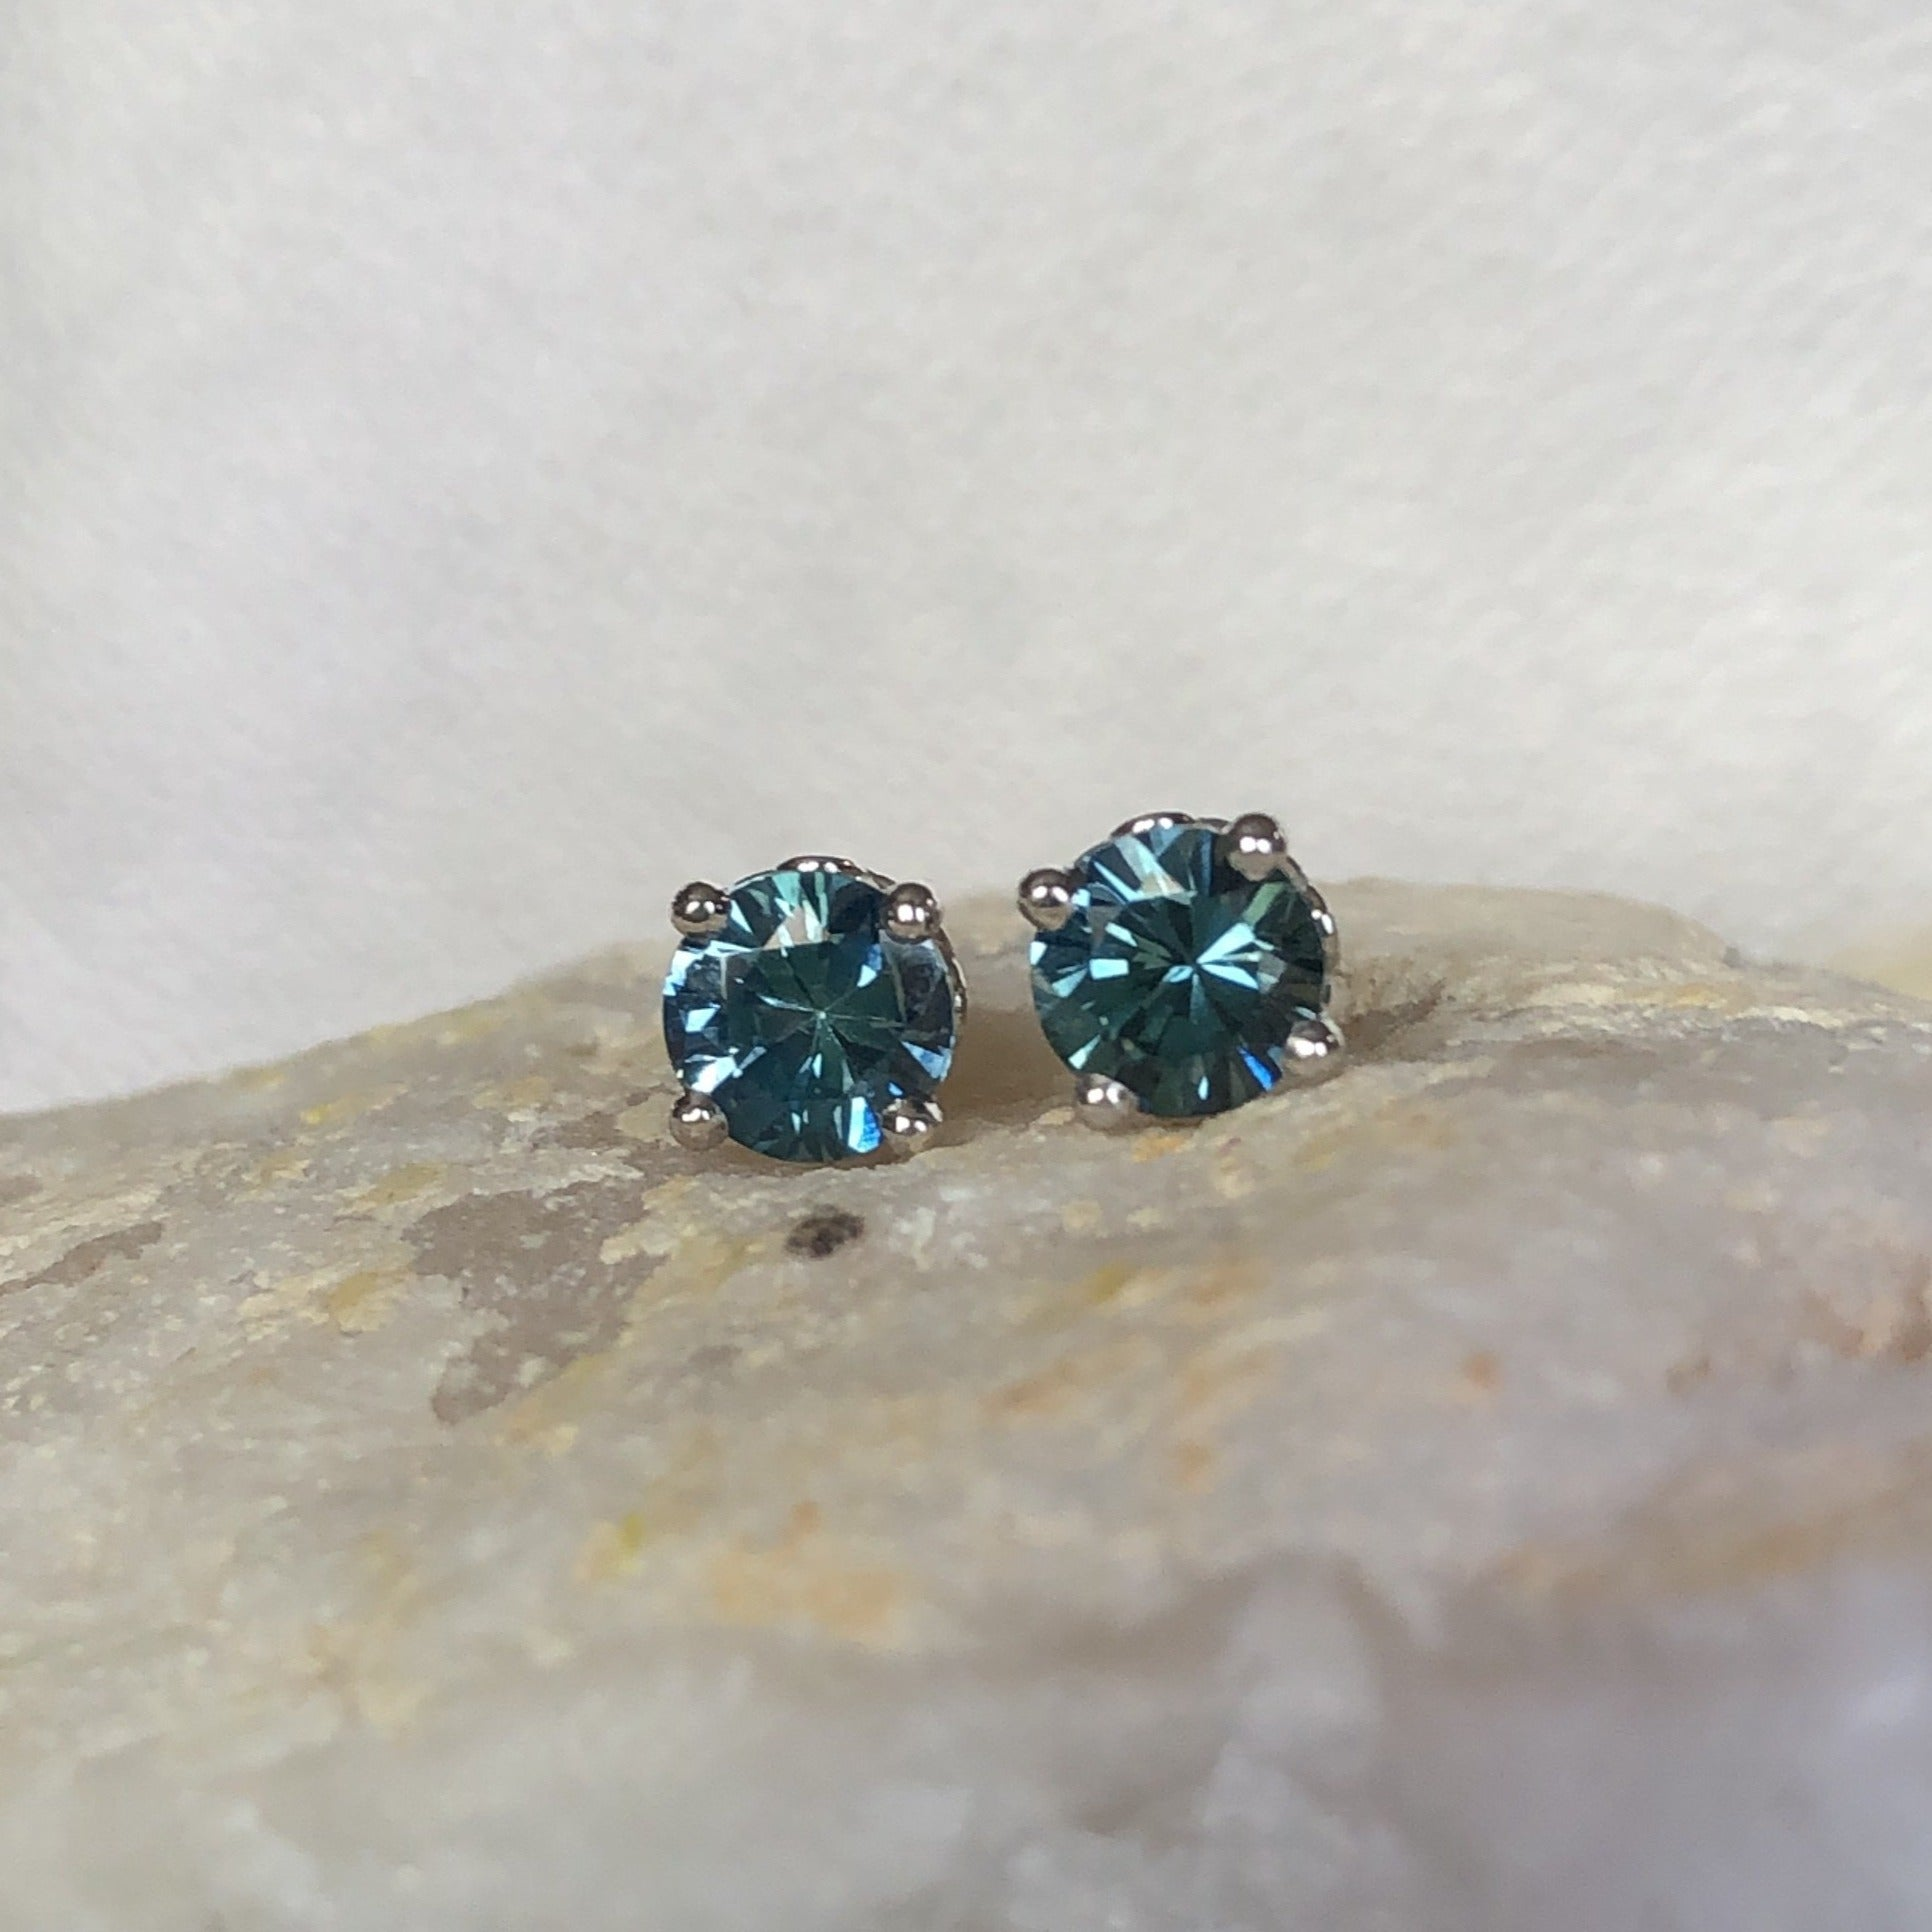 Montana Sapphire Teal .83 ctw Round Scroll Stud Earrings